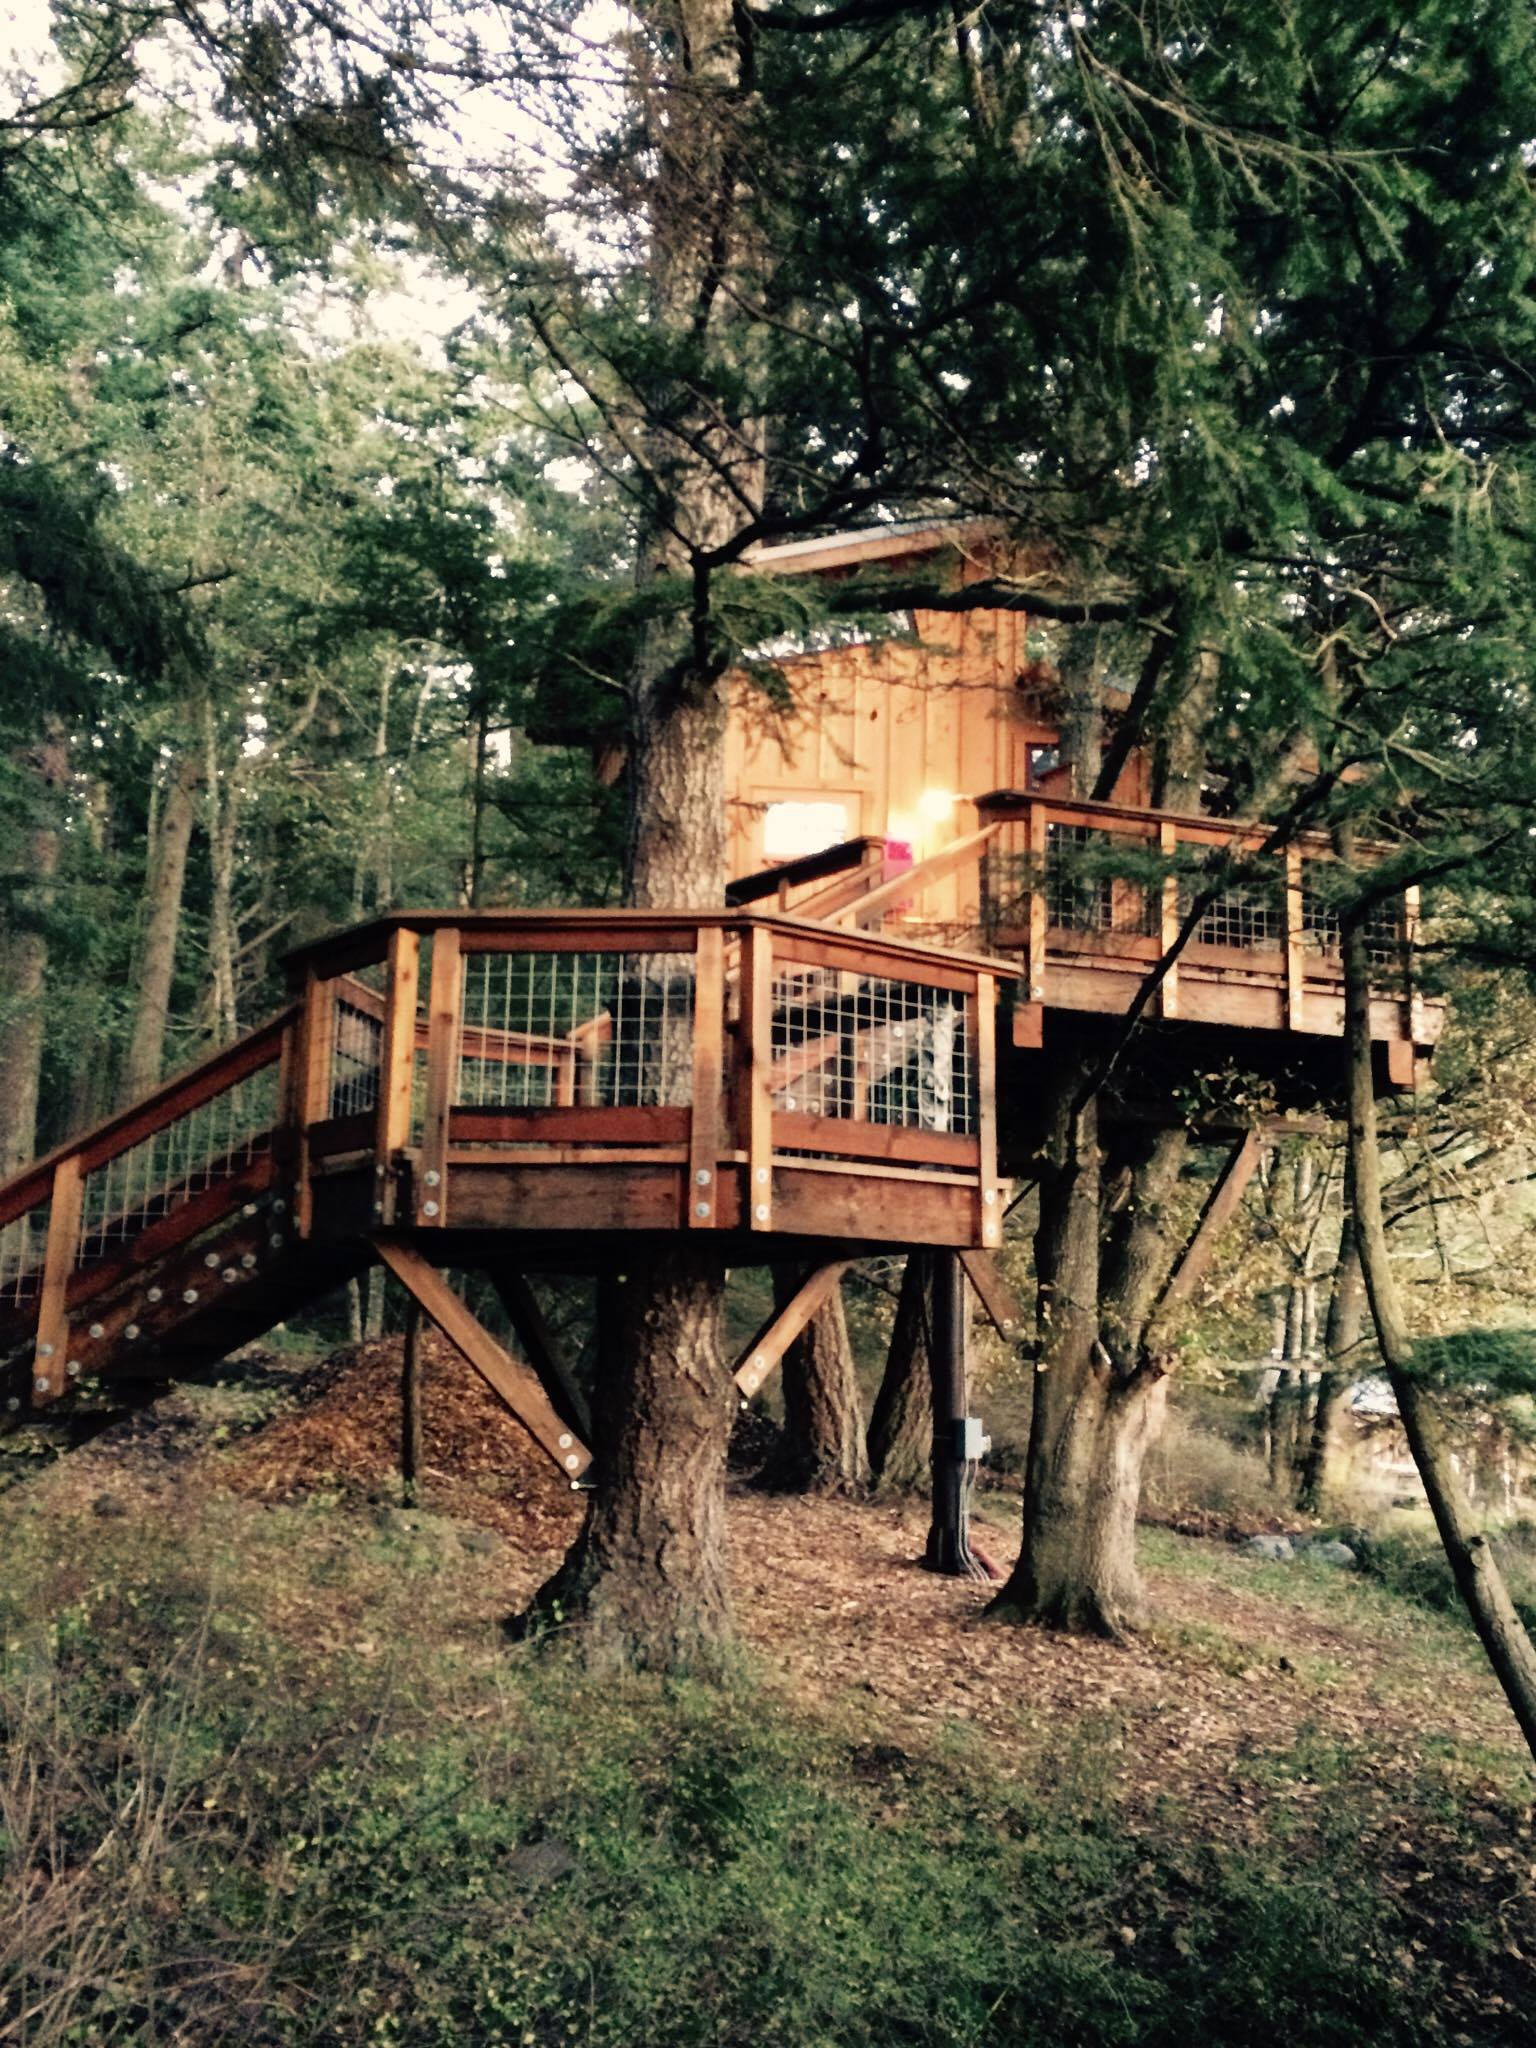 Commune with nature. Like being a kid again and having your very own tree house.